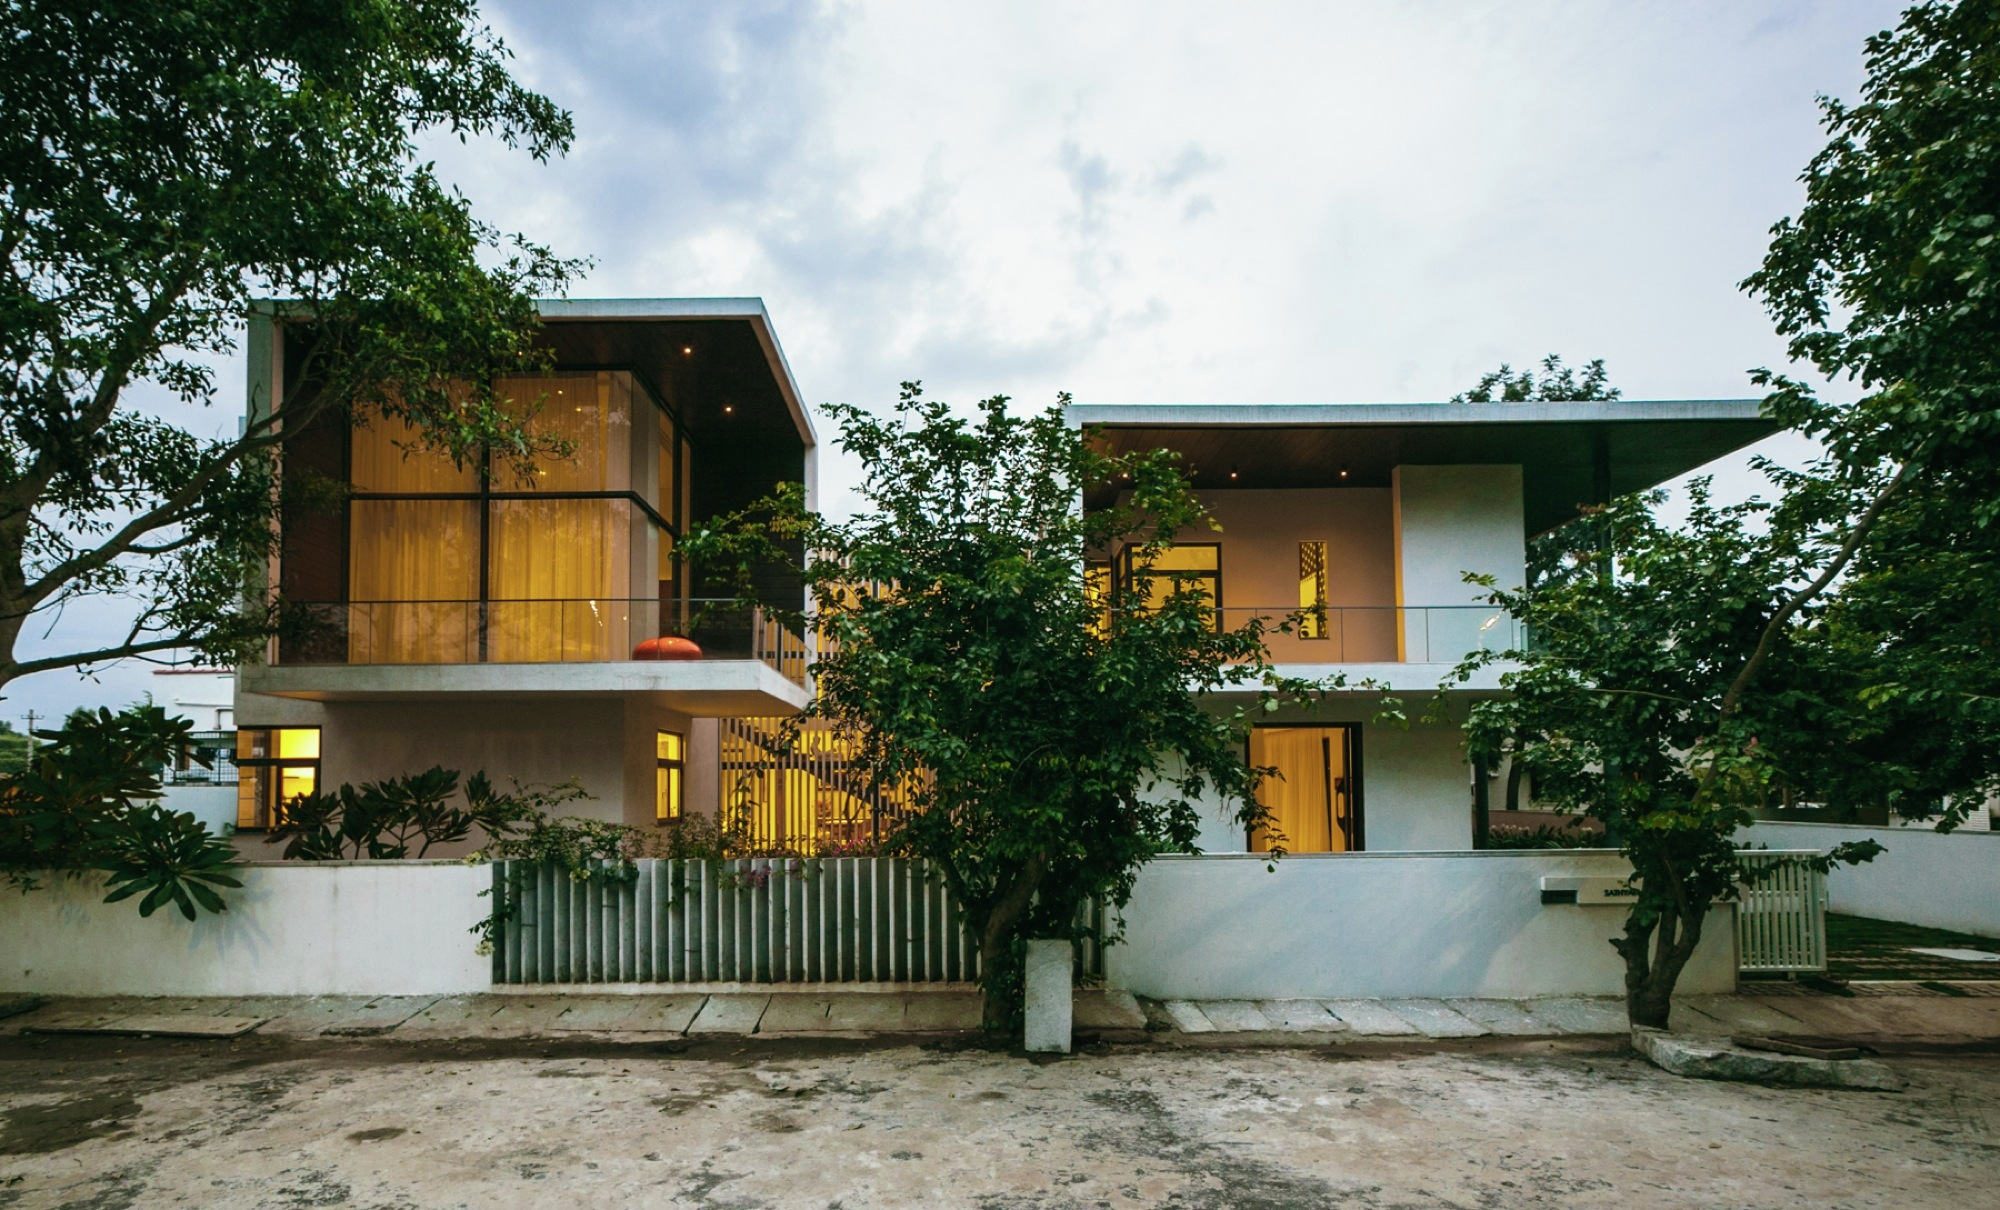 Courtyard Home Designs courtyard house / abin design studio | archdaily